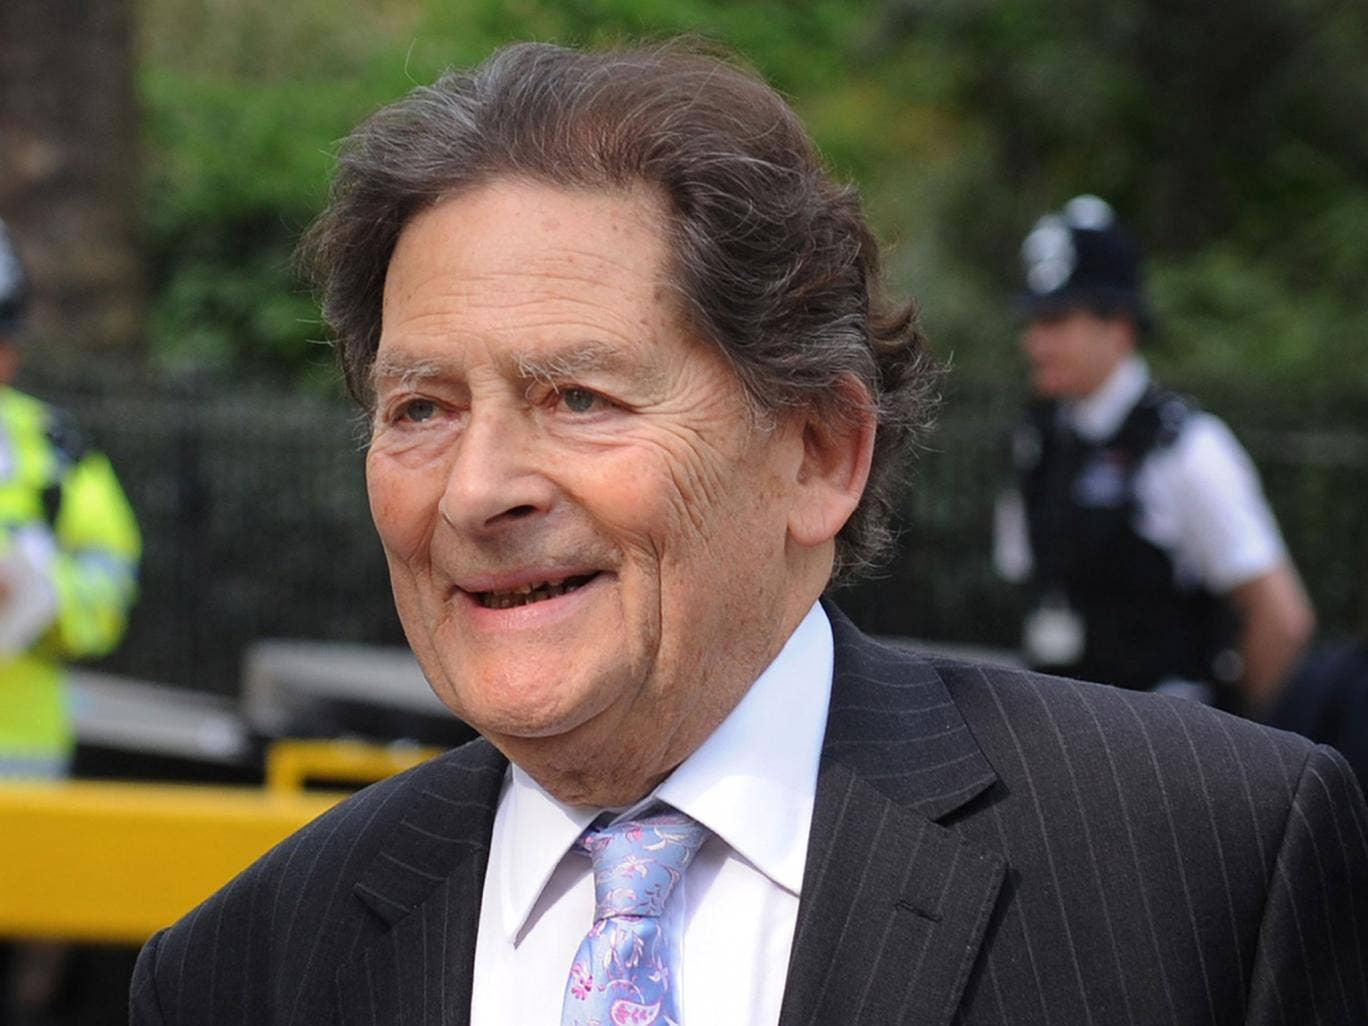 What possessed Nigel Lawson to decide that last week, after Ukip's success in the local elections, was the time to announce that he had changed his mind about the EU?